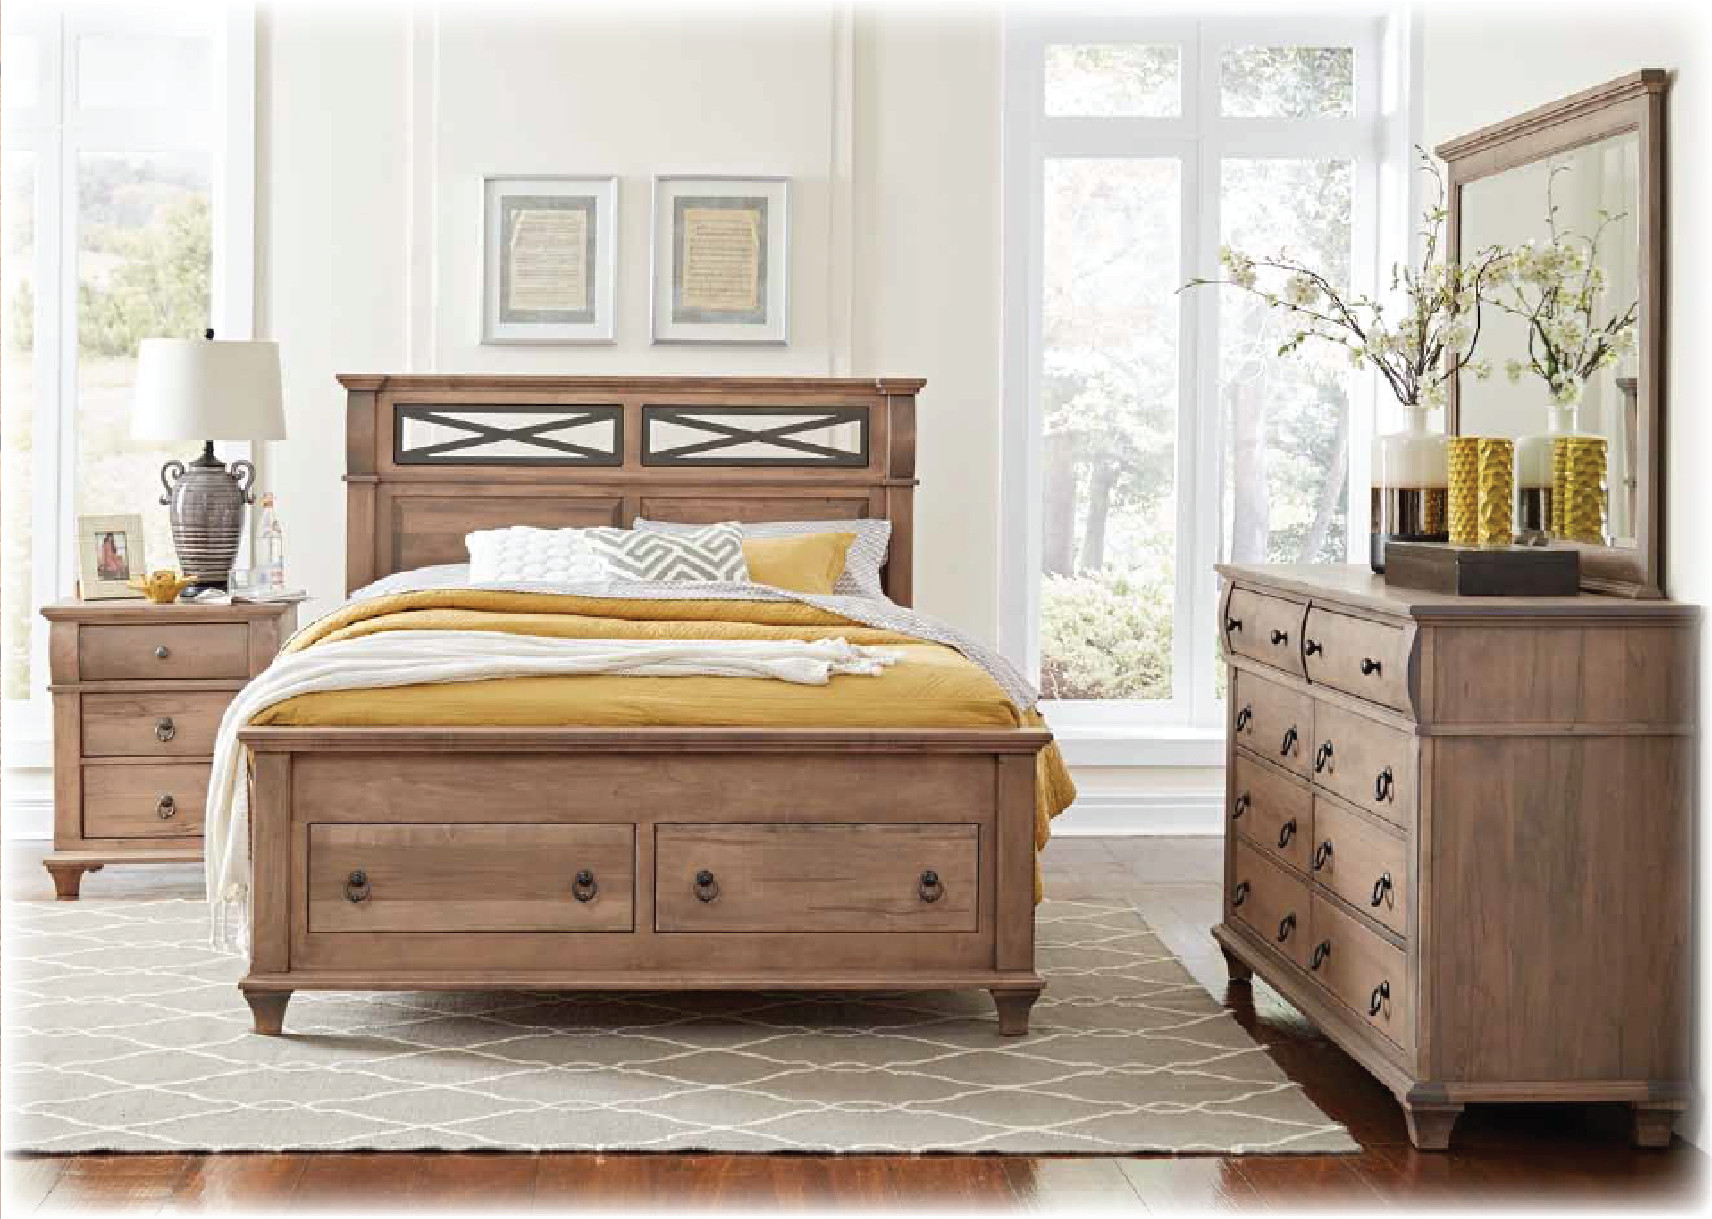 Best ideas about Amish Bedroom Furniture . Save or Pin Amish Furniture Sheely s Furniture & Appliance Ohio Now.